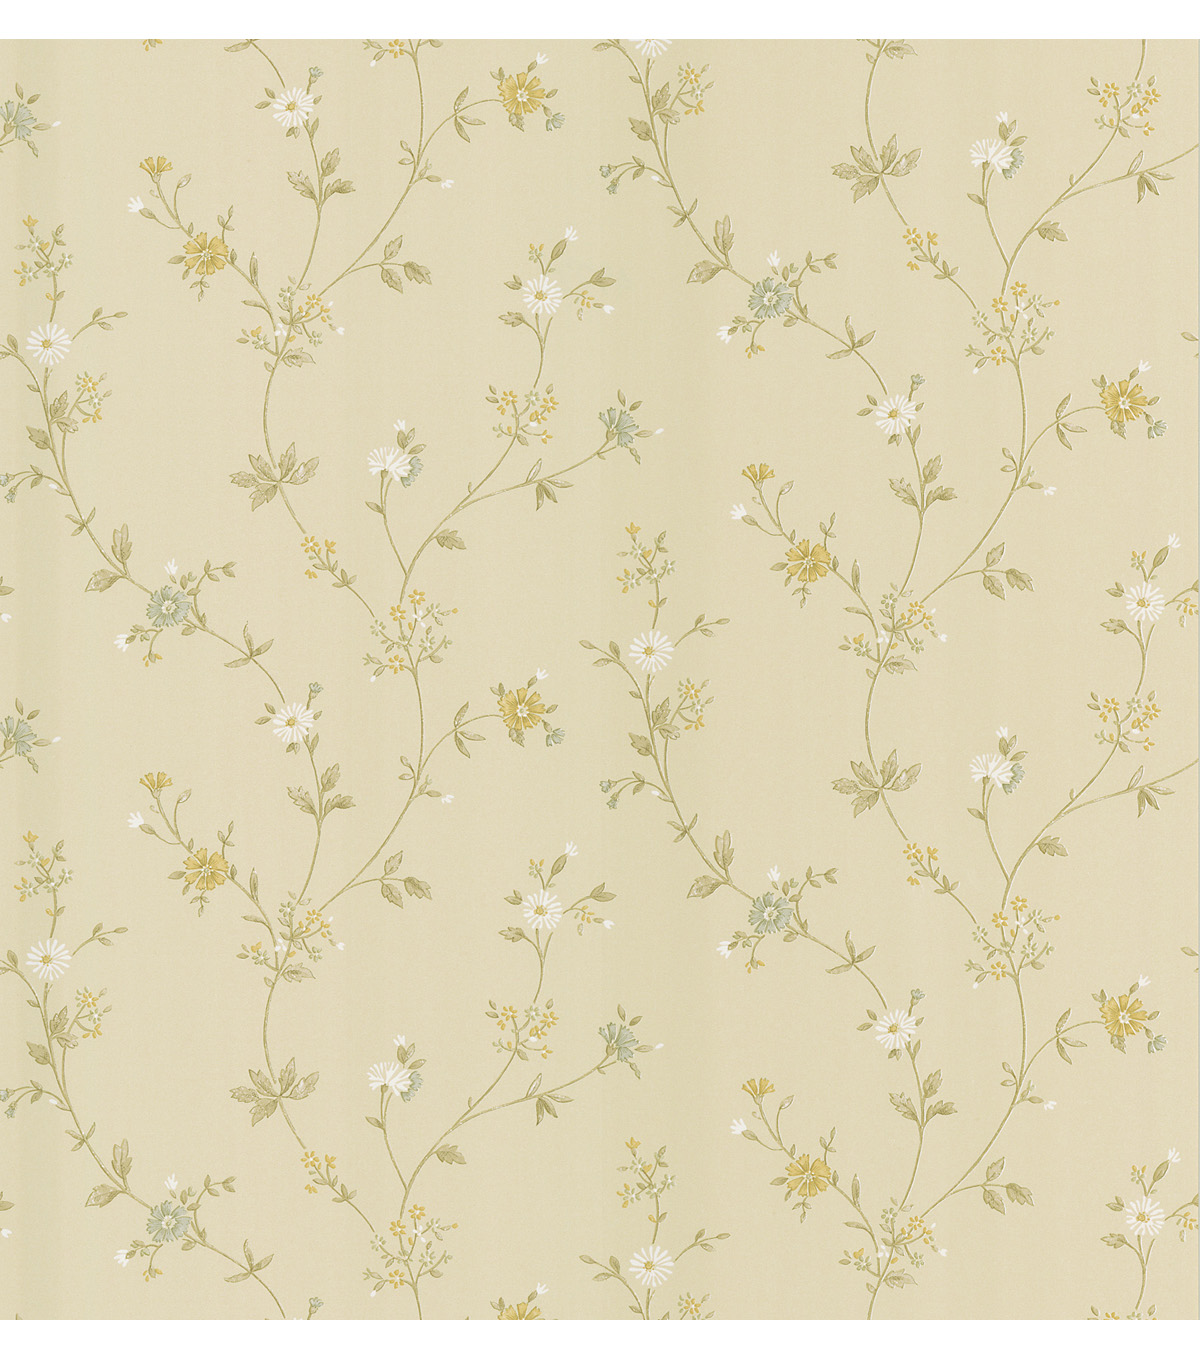 Daisy Beige Floral Trail Wallpaper Sample